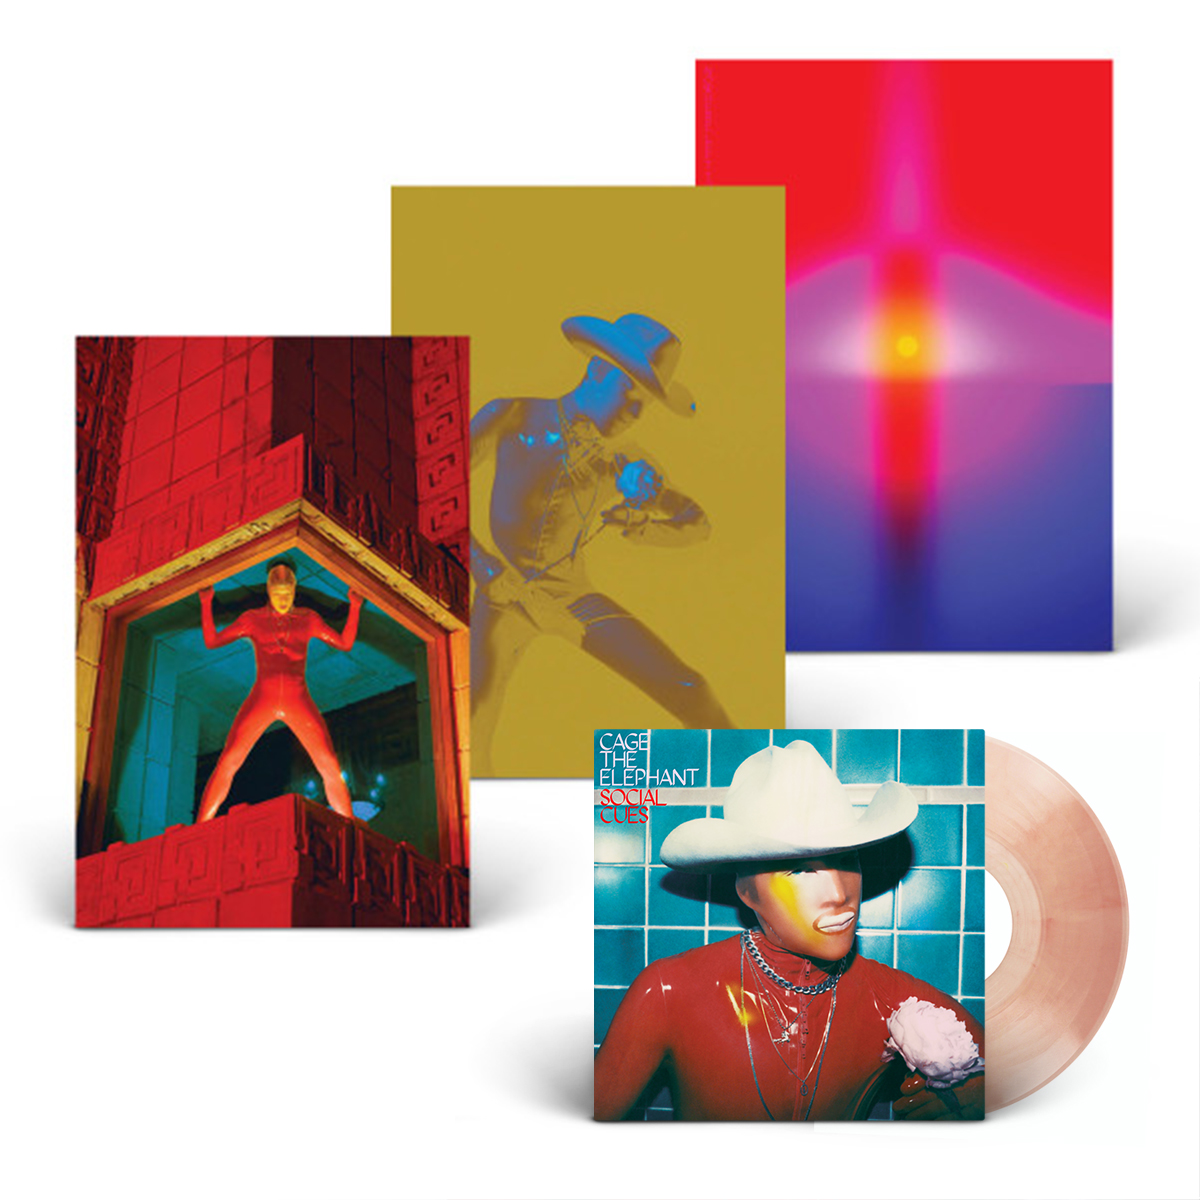 Social Cues AUTOGRAPHED Deluxe Translucent Pink Vinyl + 3-Poster Set